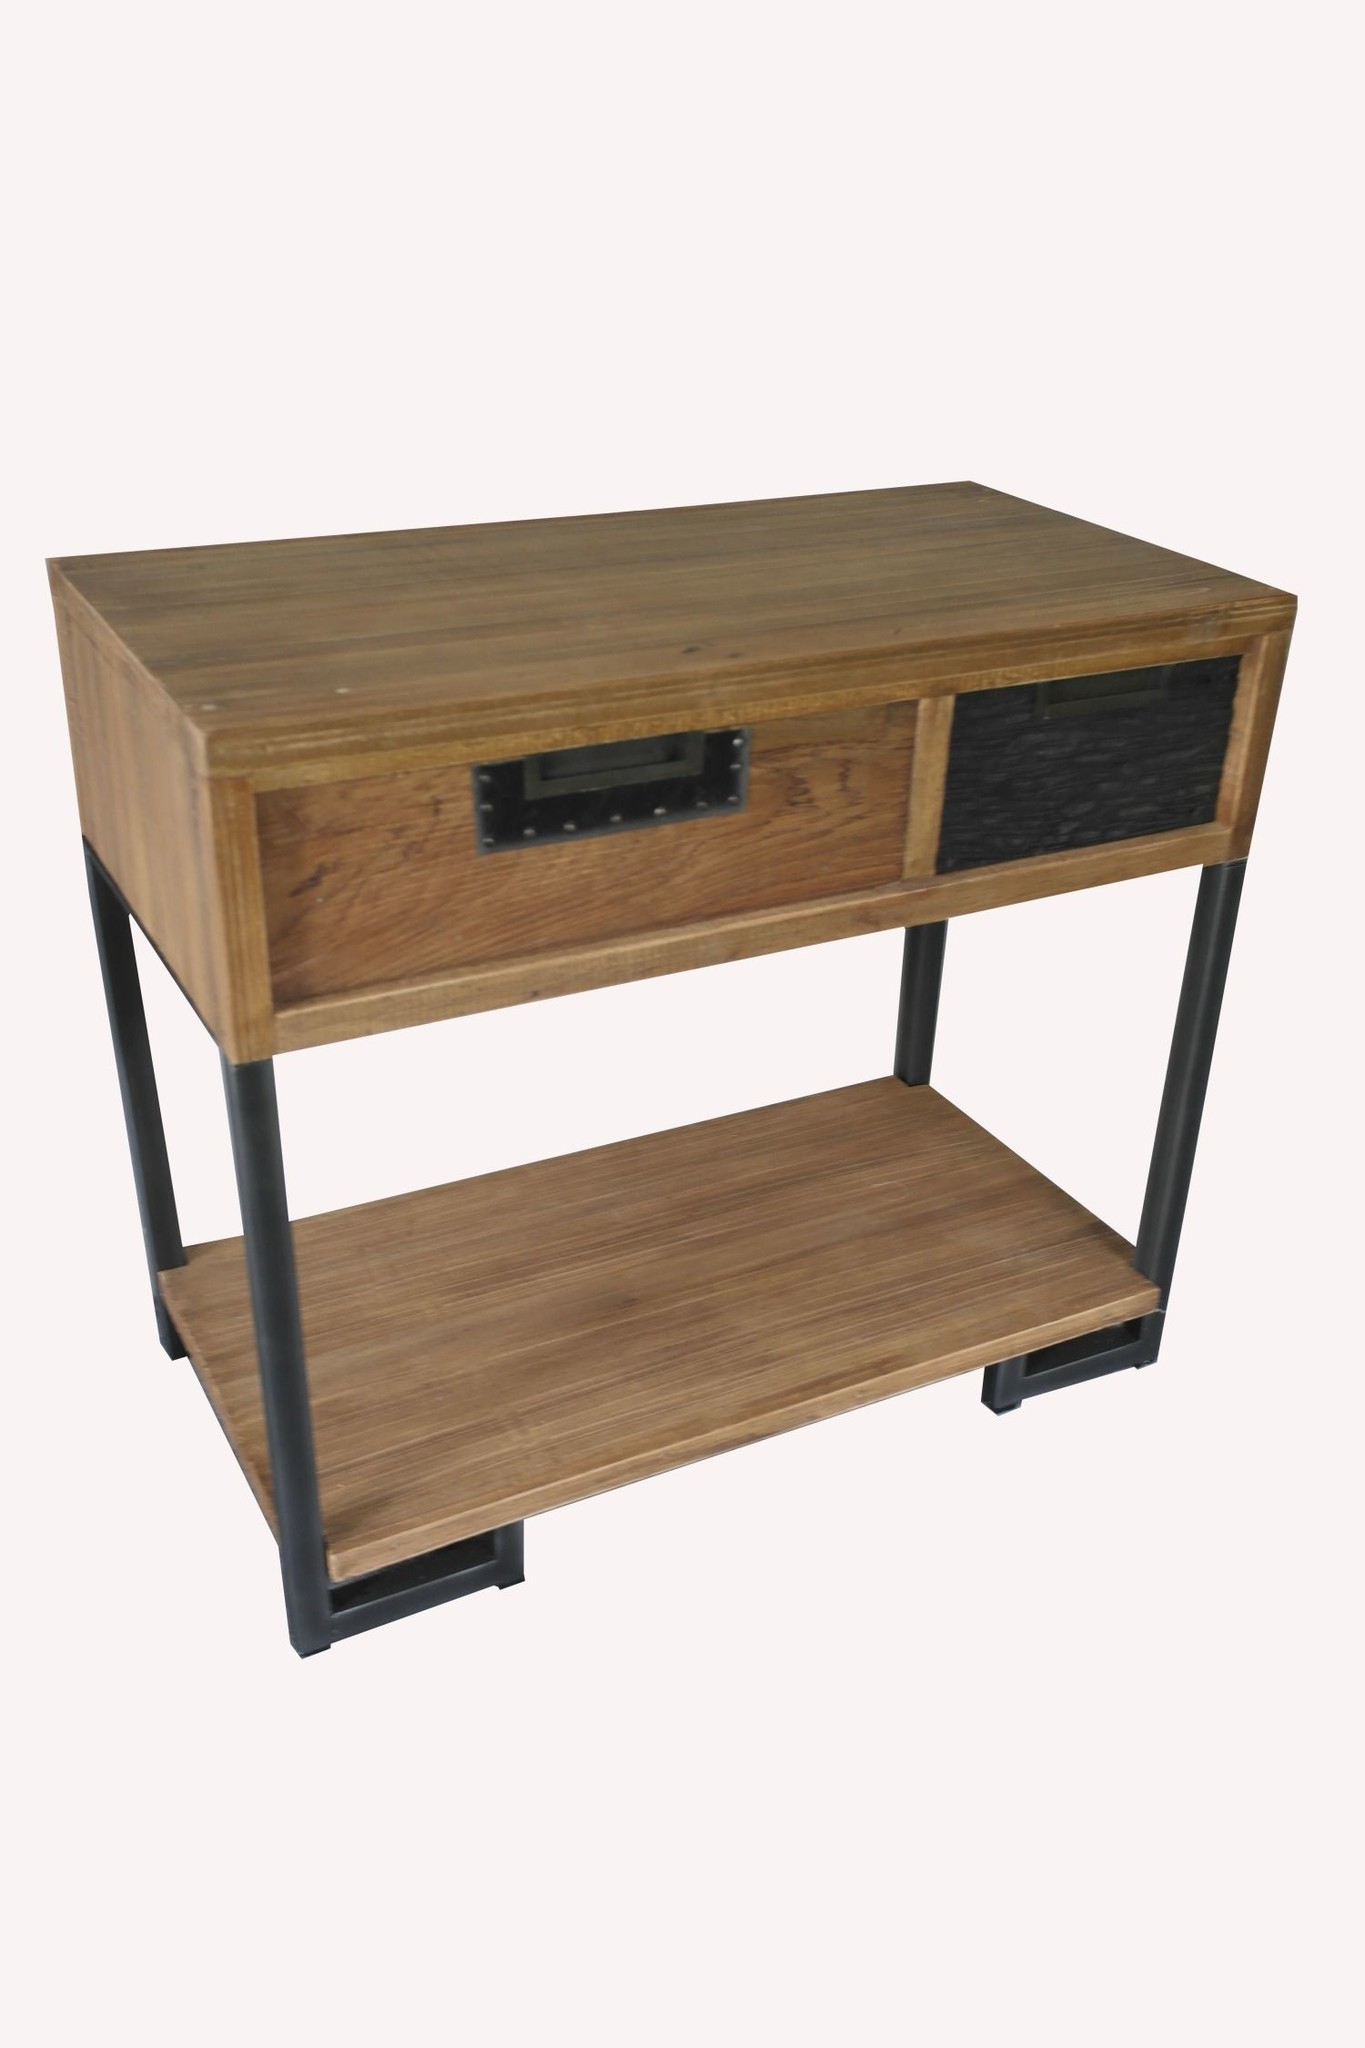 Sidetable Bruin Hout.Sidetable Thalysa Bruin 90cm Hout